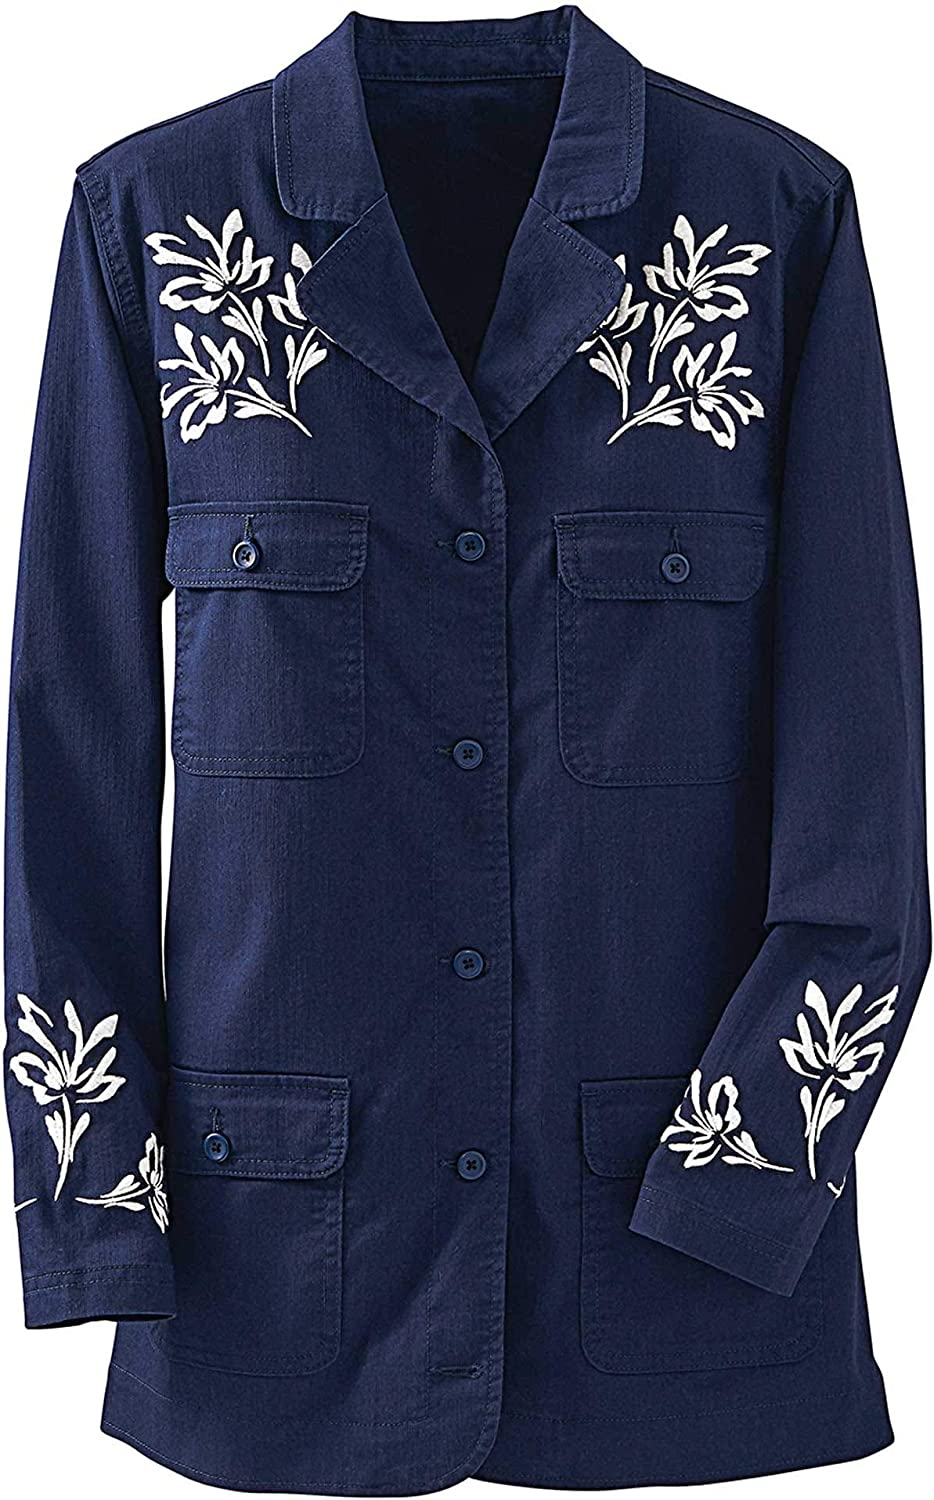 National Women's Floral-Embroidered Jacket - Comfy Stretch Denim - Patch Pockets, Long Sleeves, Rounded Hem Opening